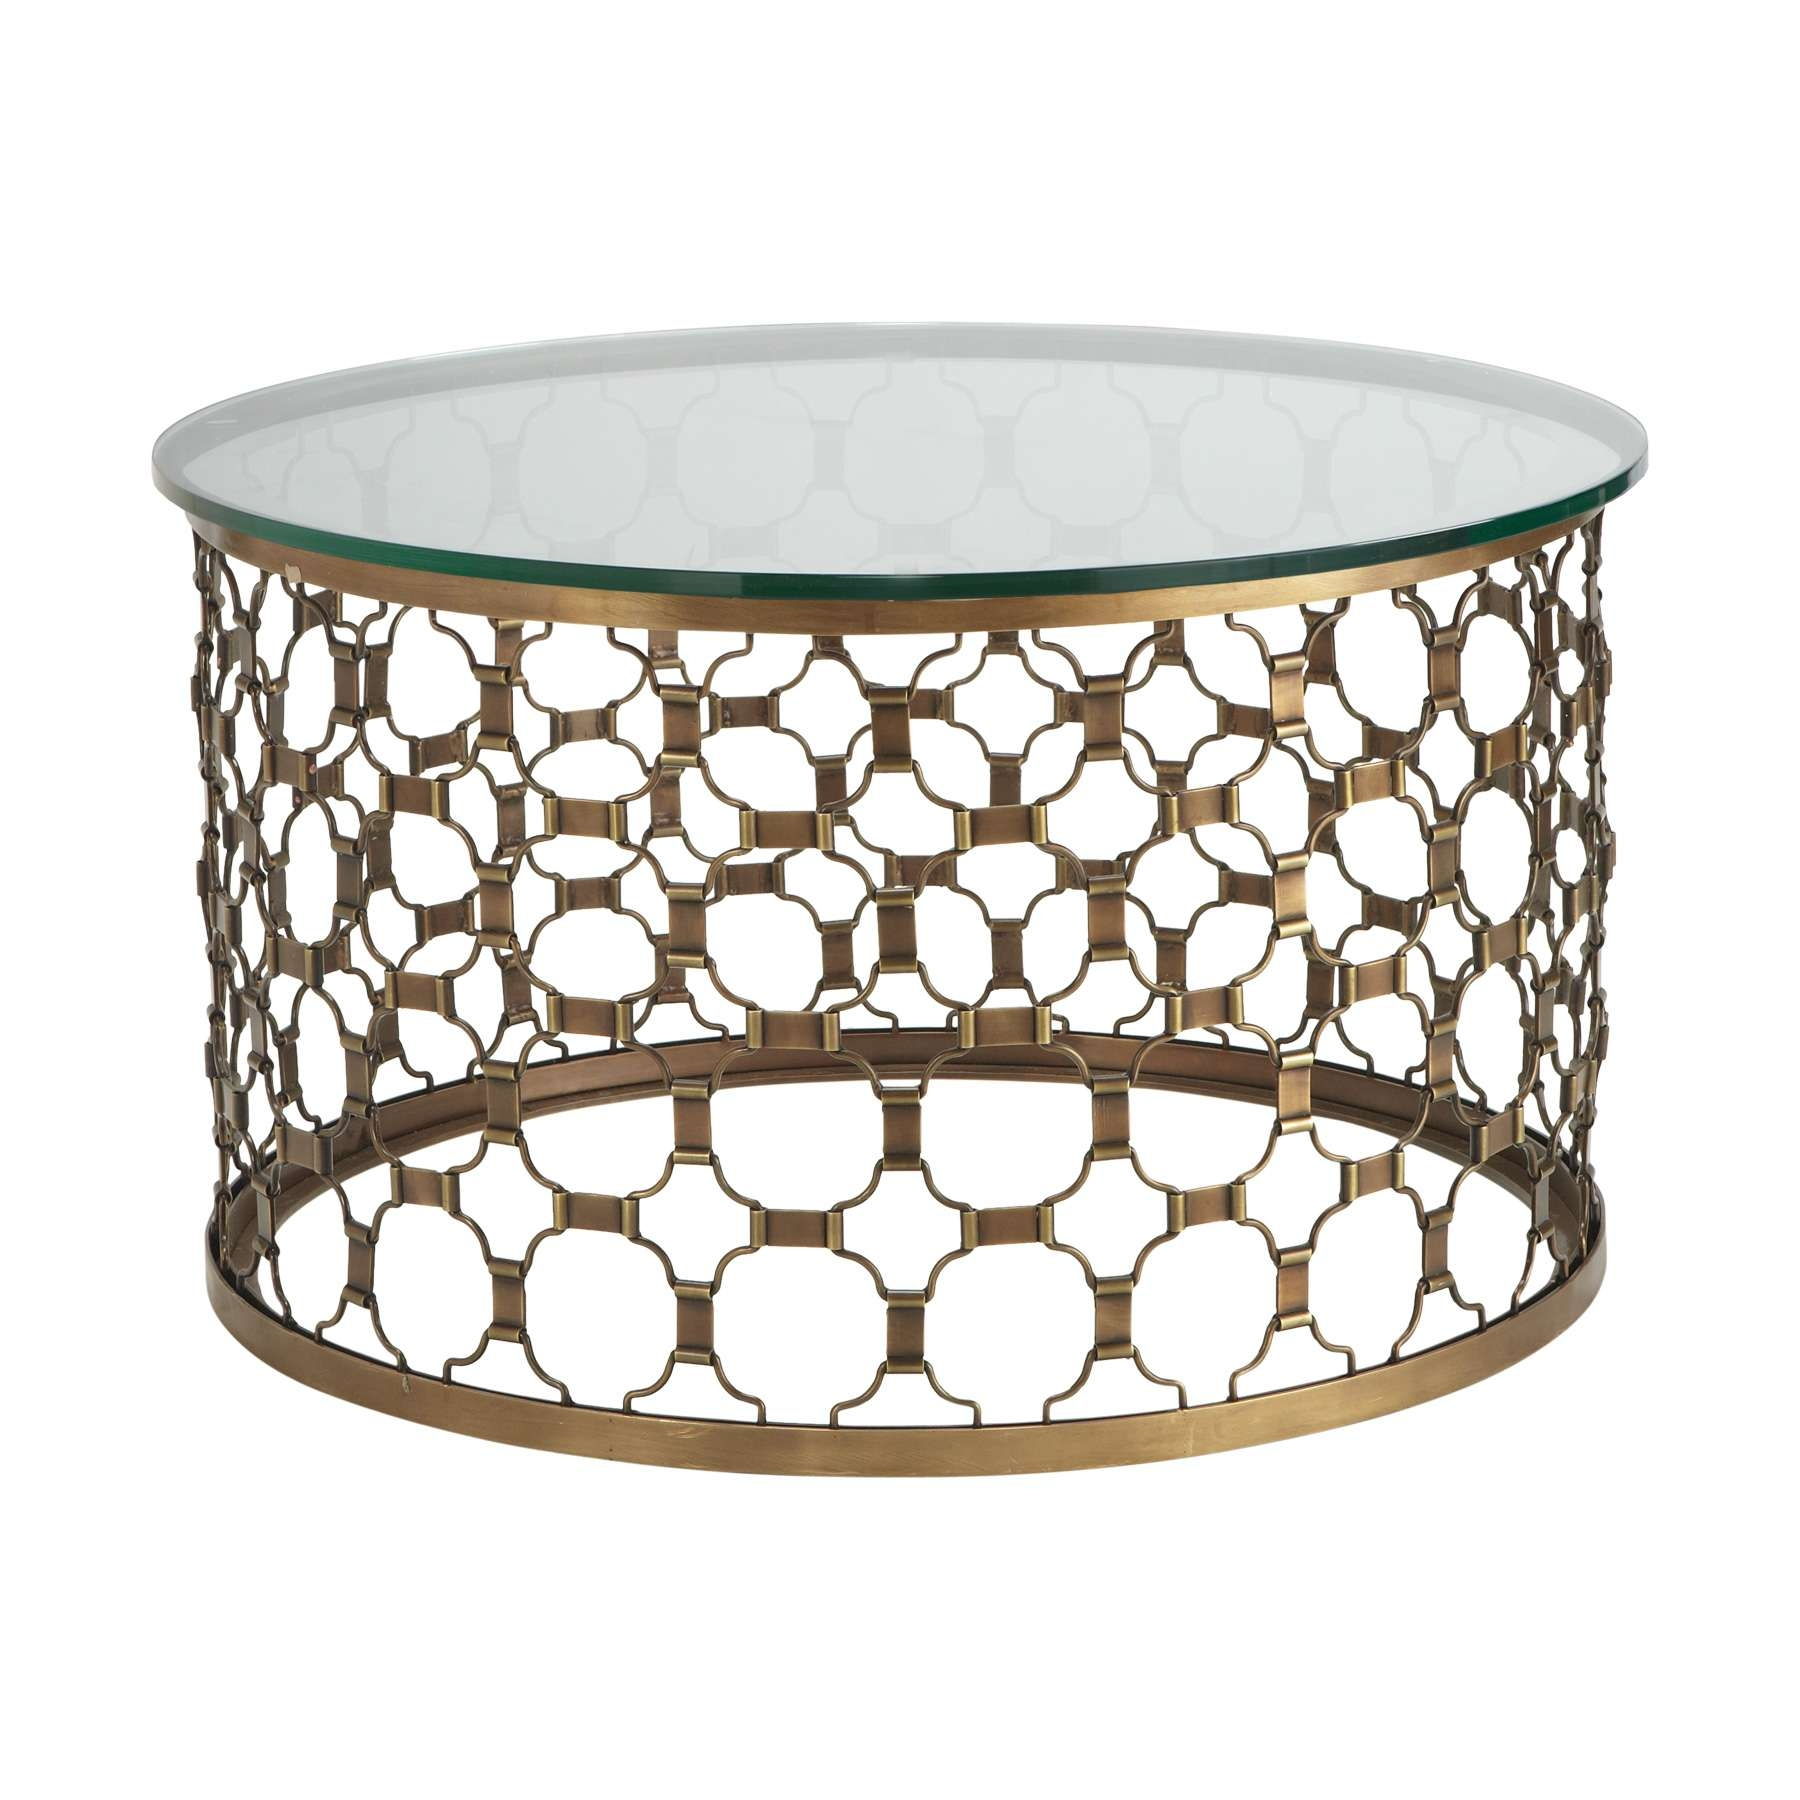 Coffee Tables : Naomi Round Coffee Table Elegant Gold Metal Top Pertaining To Newest Contemporary Round Coffee Tables (View 10 of 20)